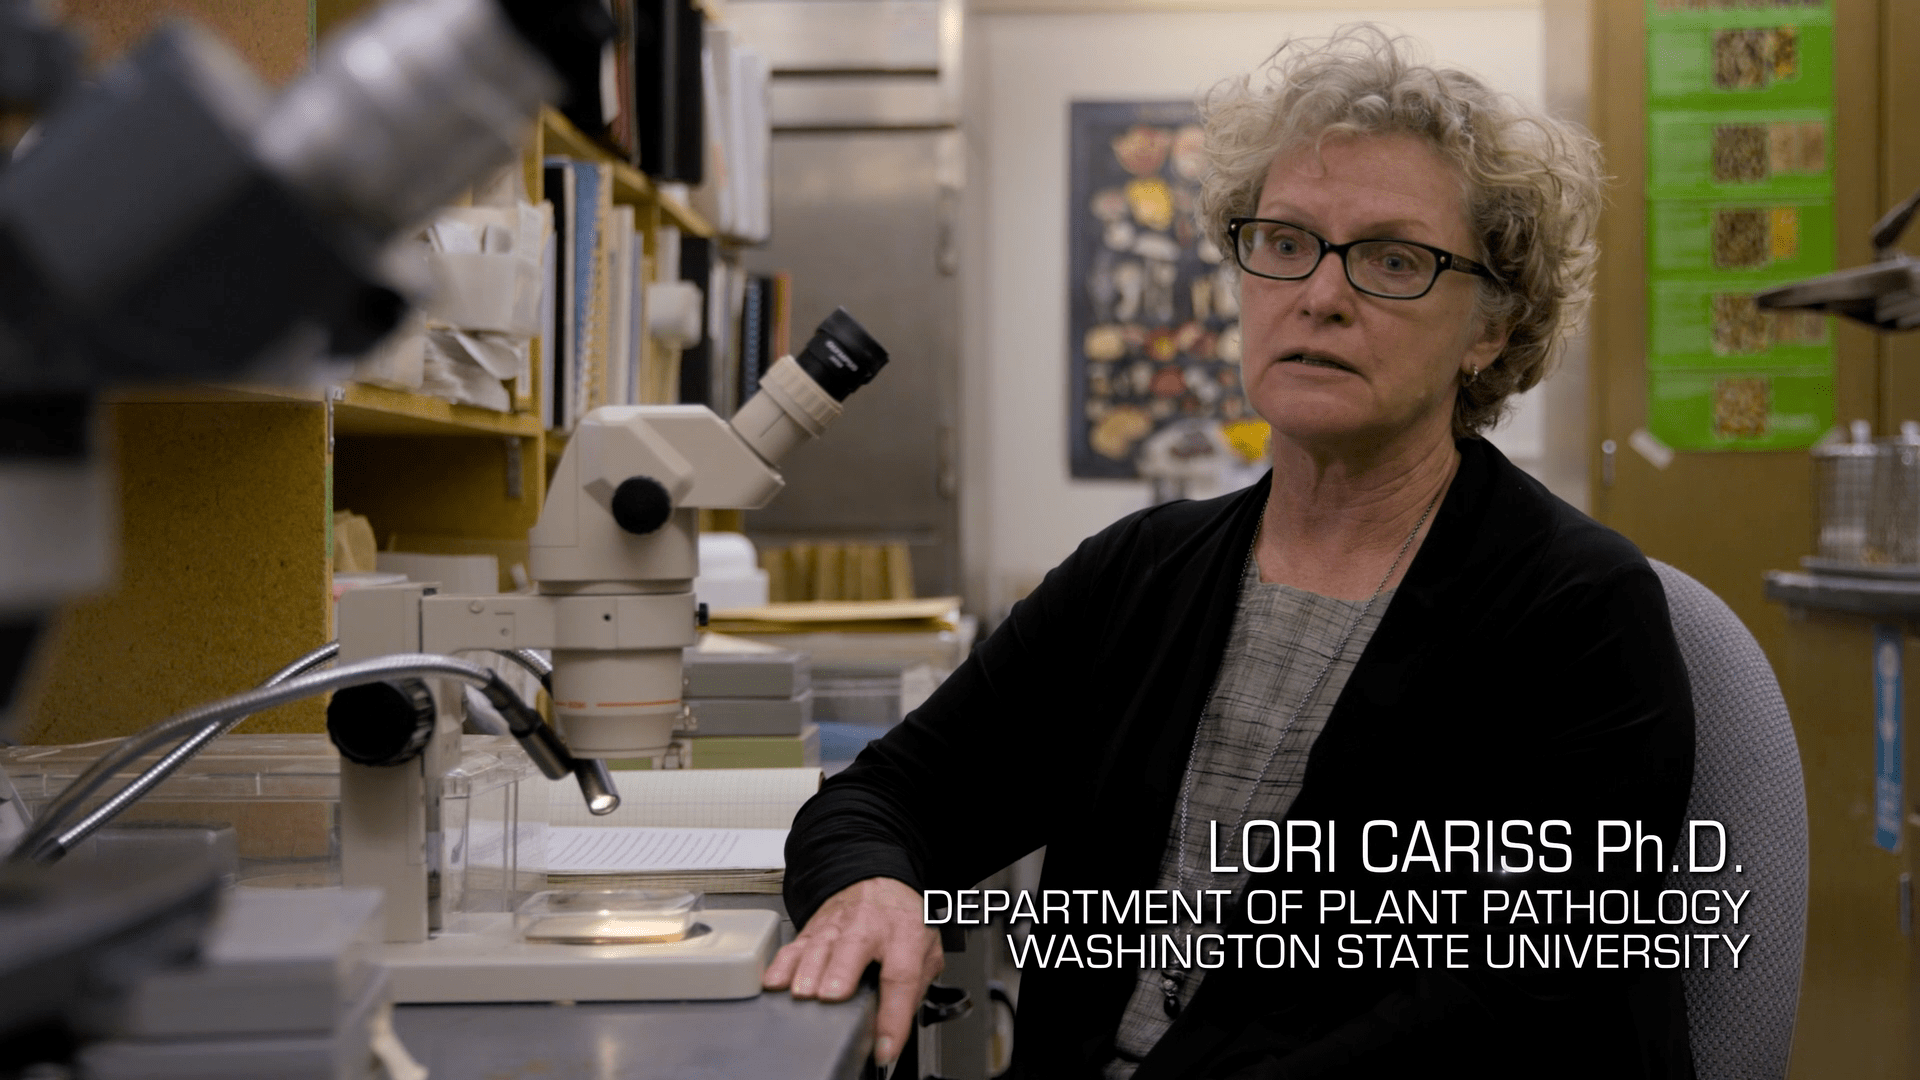 international women's day Is all about women's rights! We have to recognize women in Mycology for their amazing achievements in the field. Lori Cariss is a Ph. D. In the department of plant pathology.